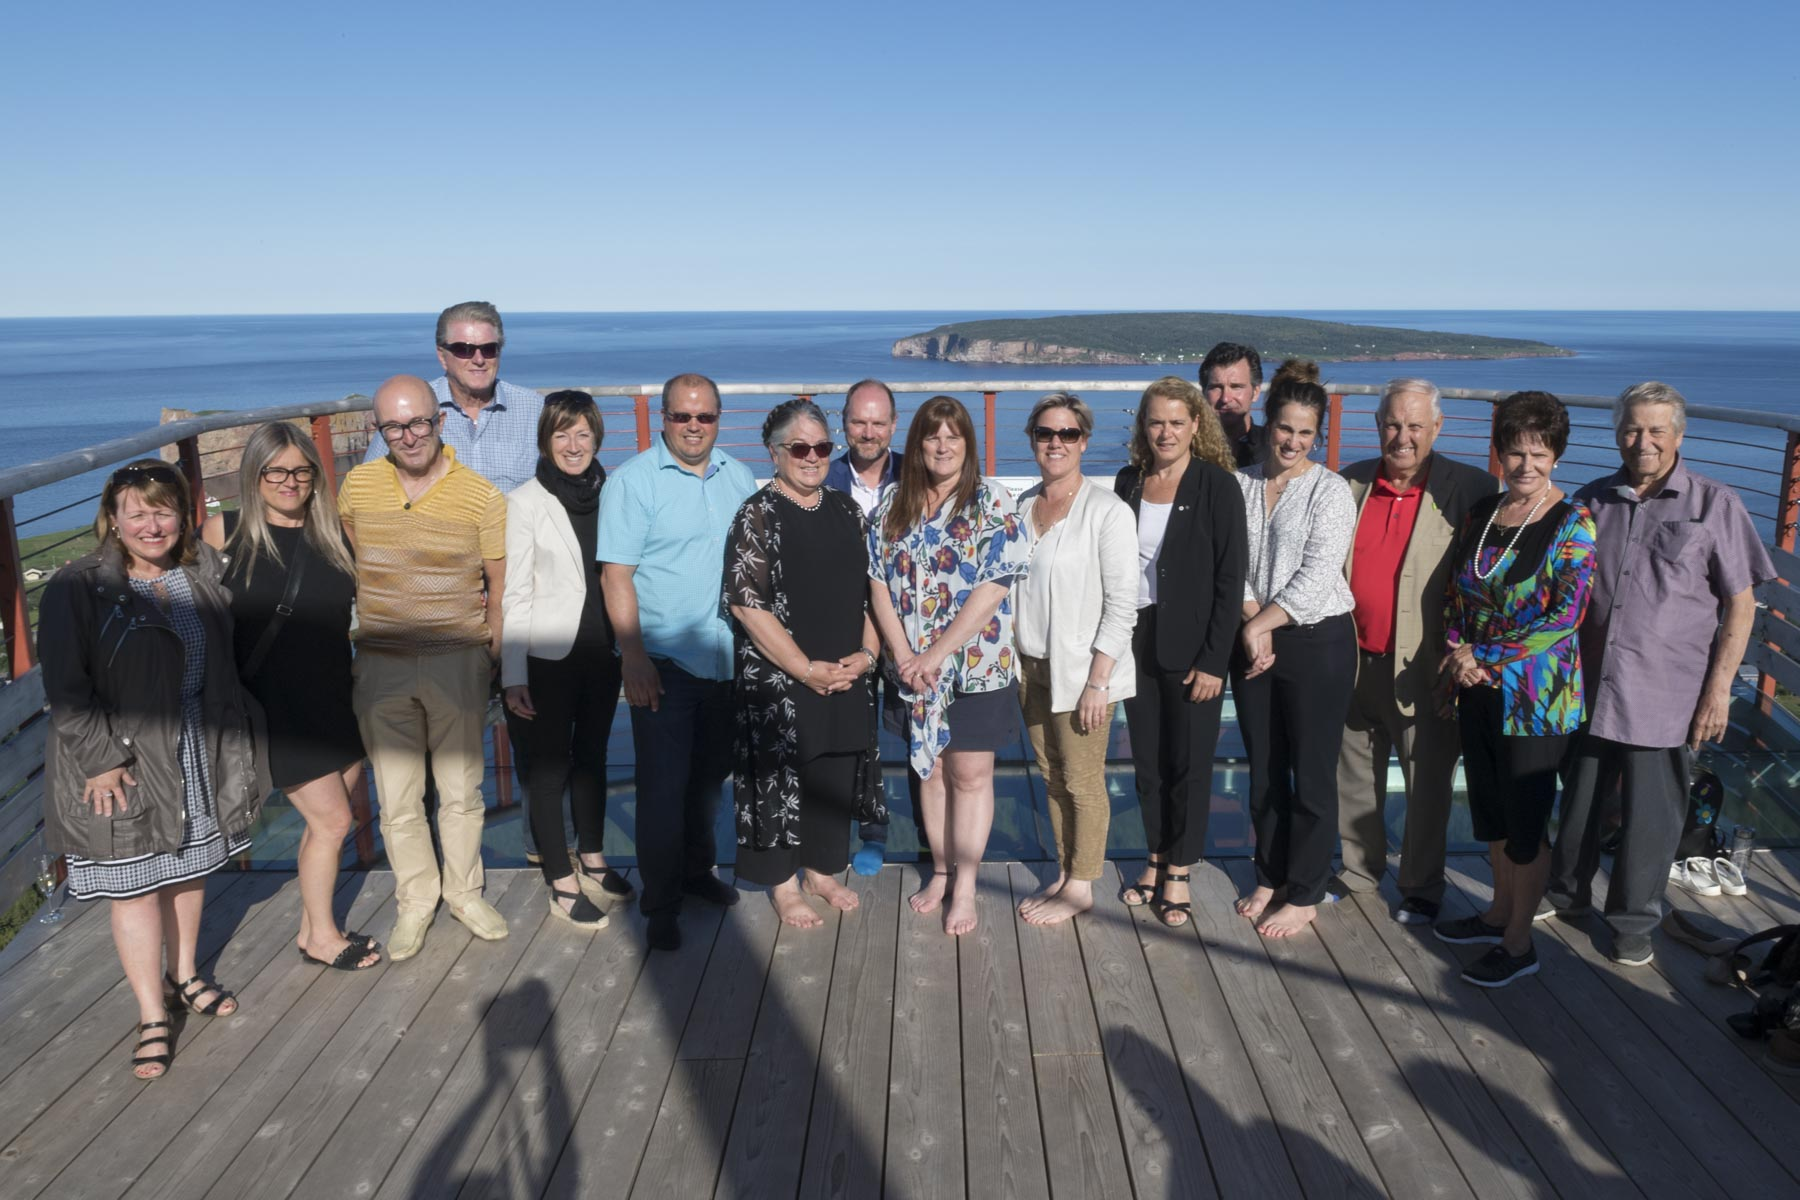 Her Excellency met several local tourism entrepreneurs and investors who were involved in creating this new tourist attraction as members of the Coopérative de solidarité du Géoparc de Percé.